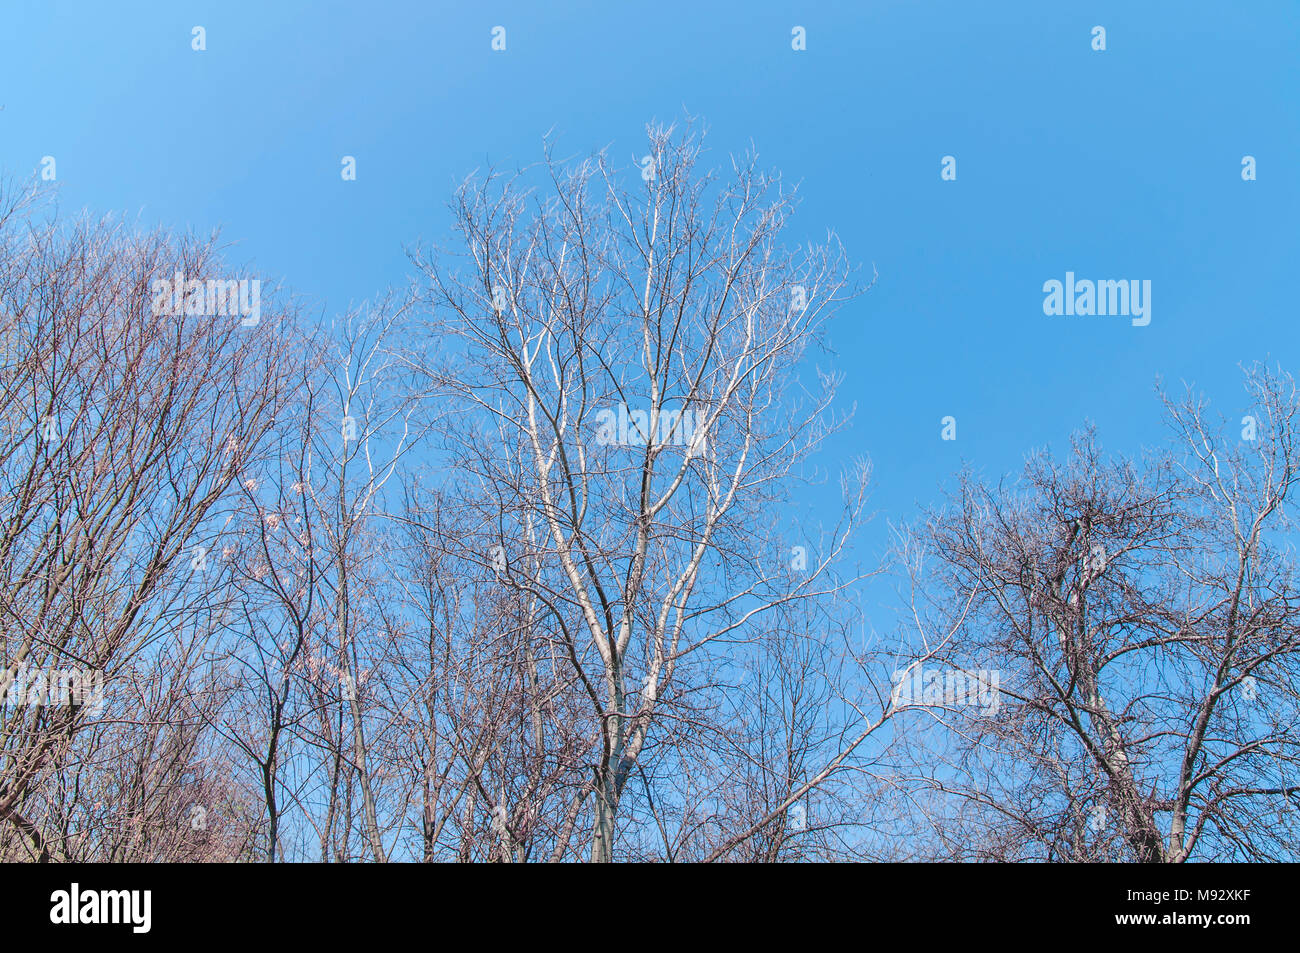 Huge trees, branches out in all directions, big blue sky, view from below - Stock Image